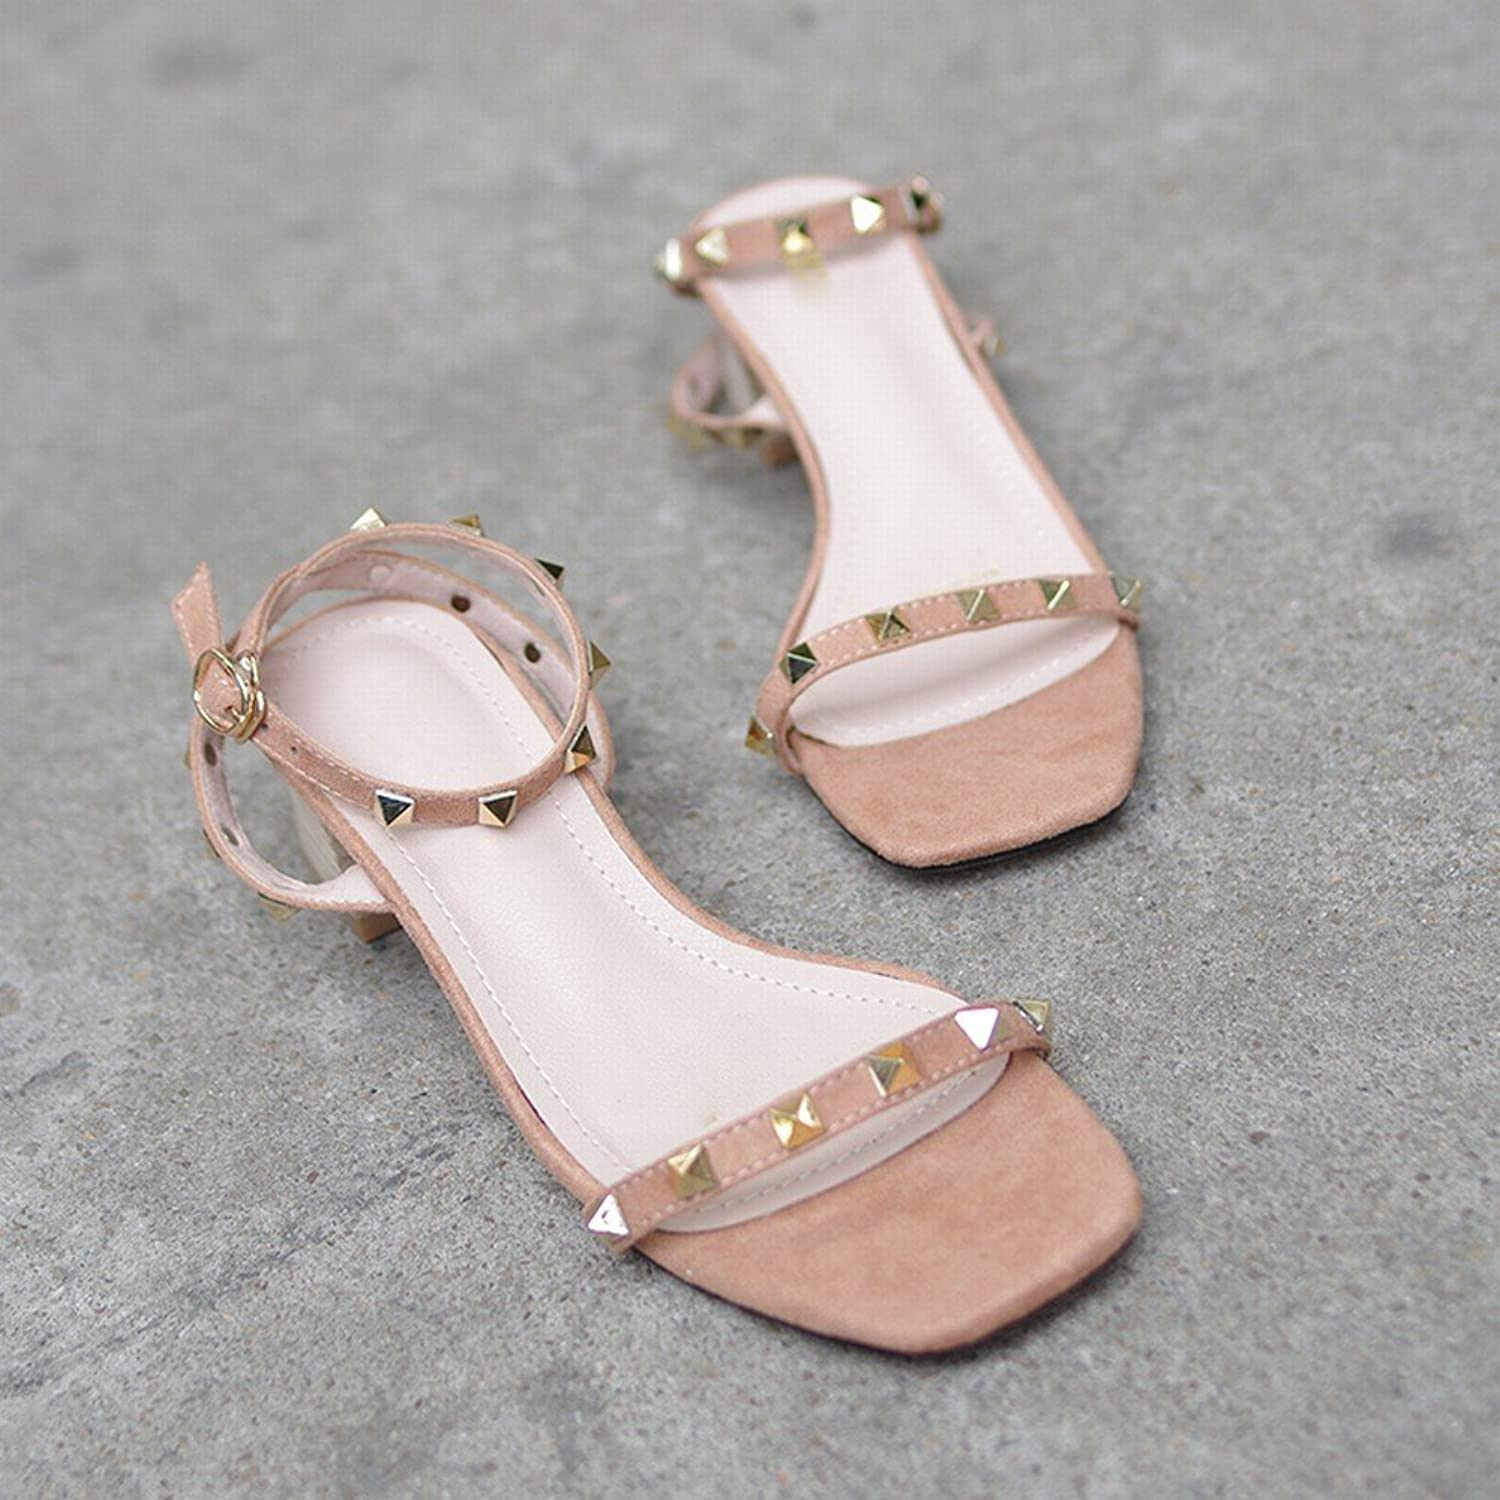 DHG Rivet Sandals Female with Retro Fine Ribbon with Wild Thick with Fairy High Heel Sandals